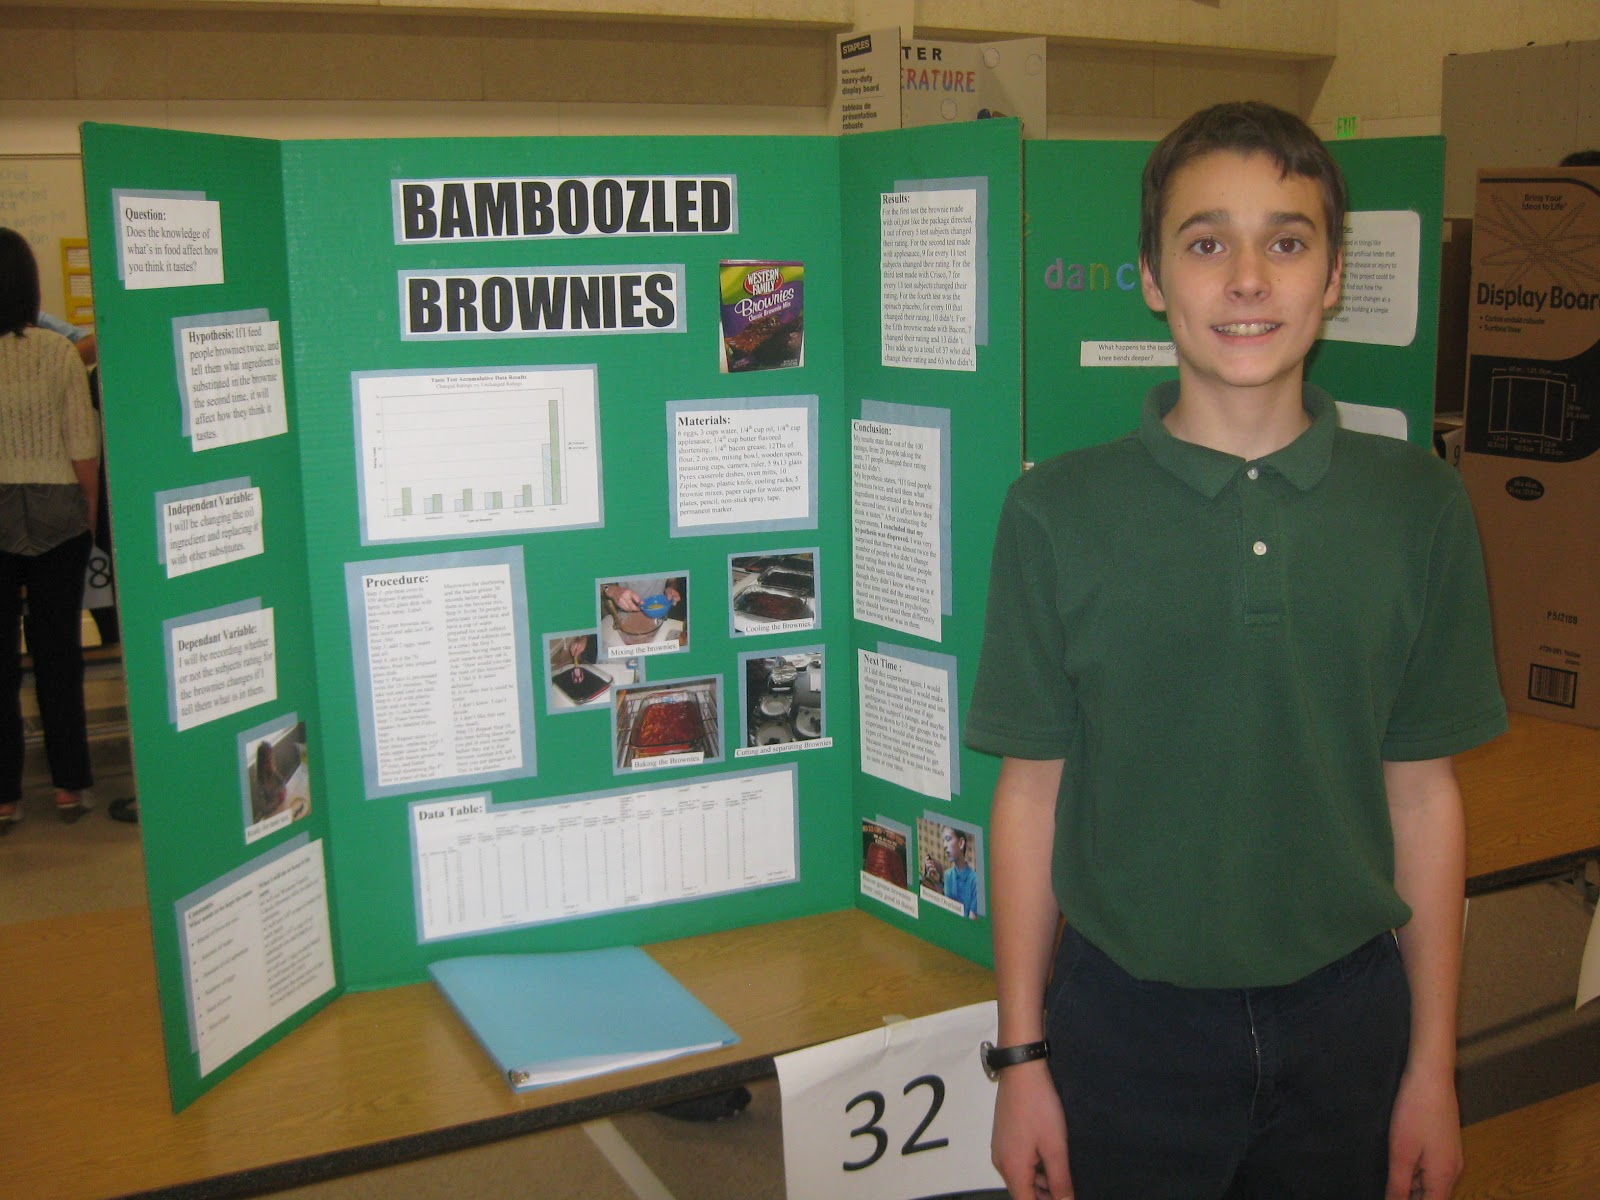 The Bec Ster Science Fair Tec